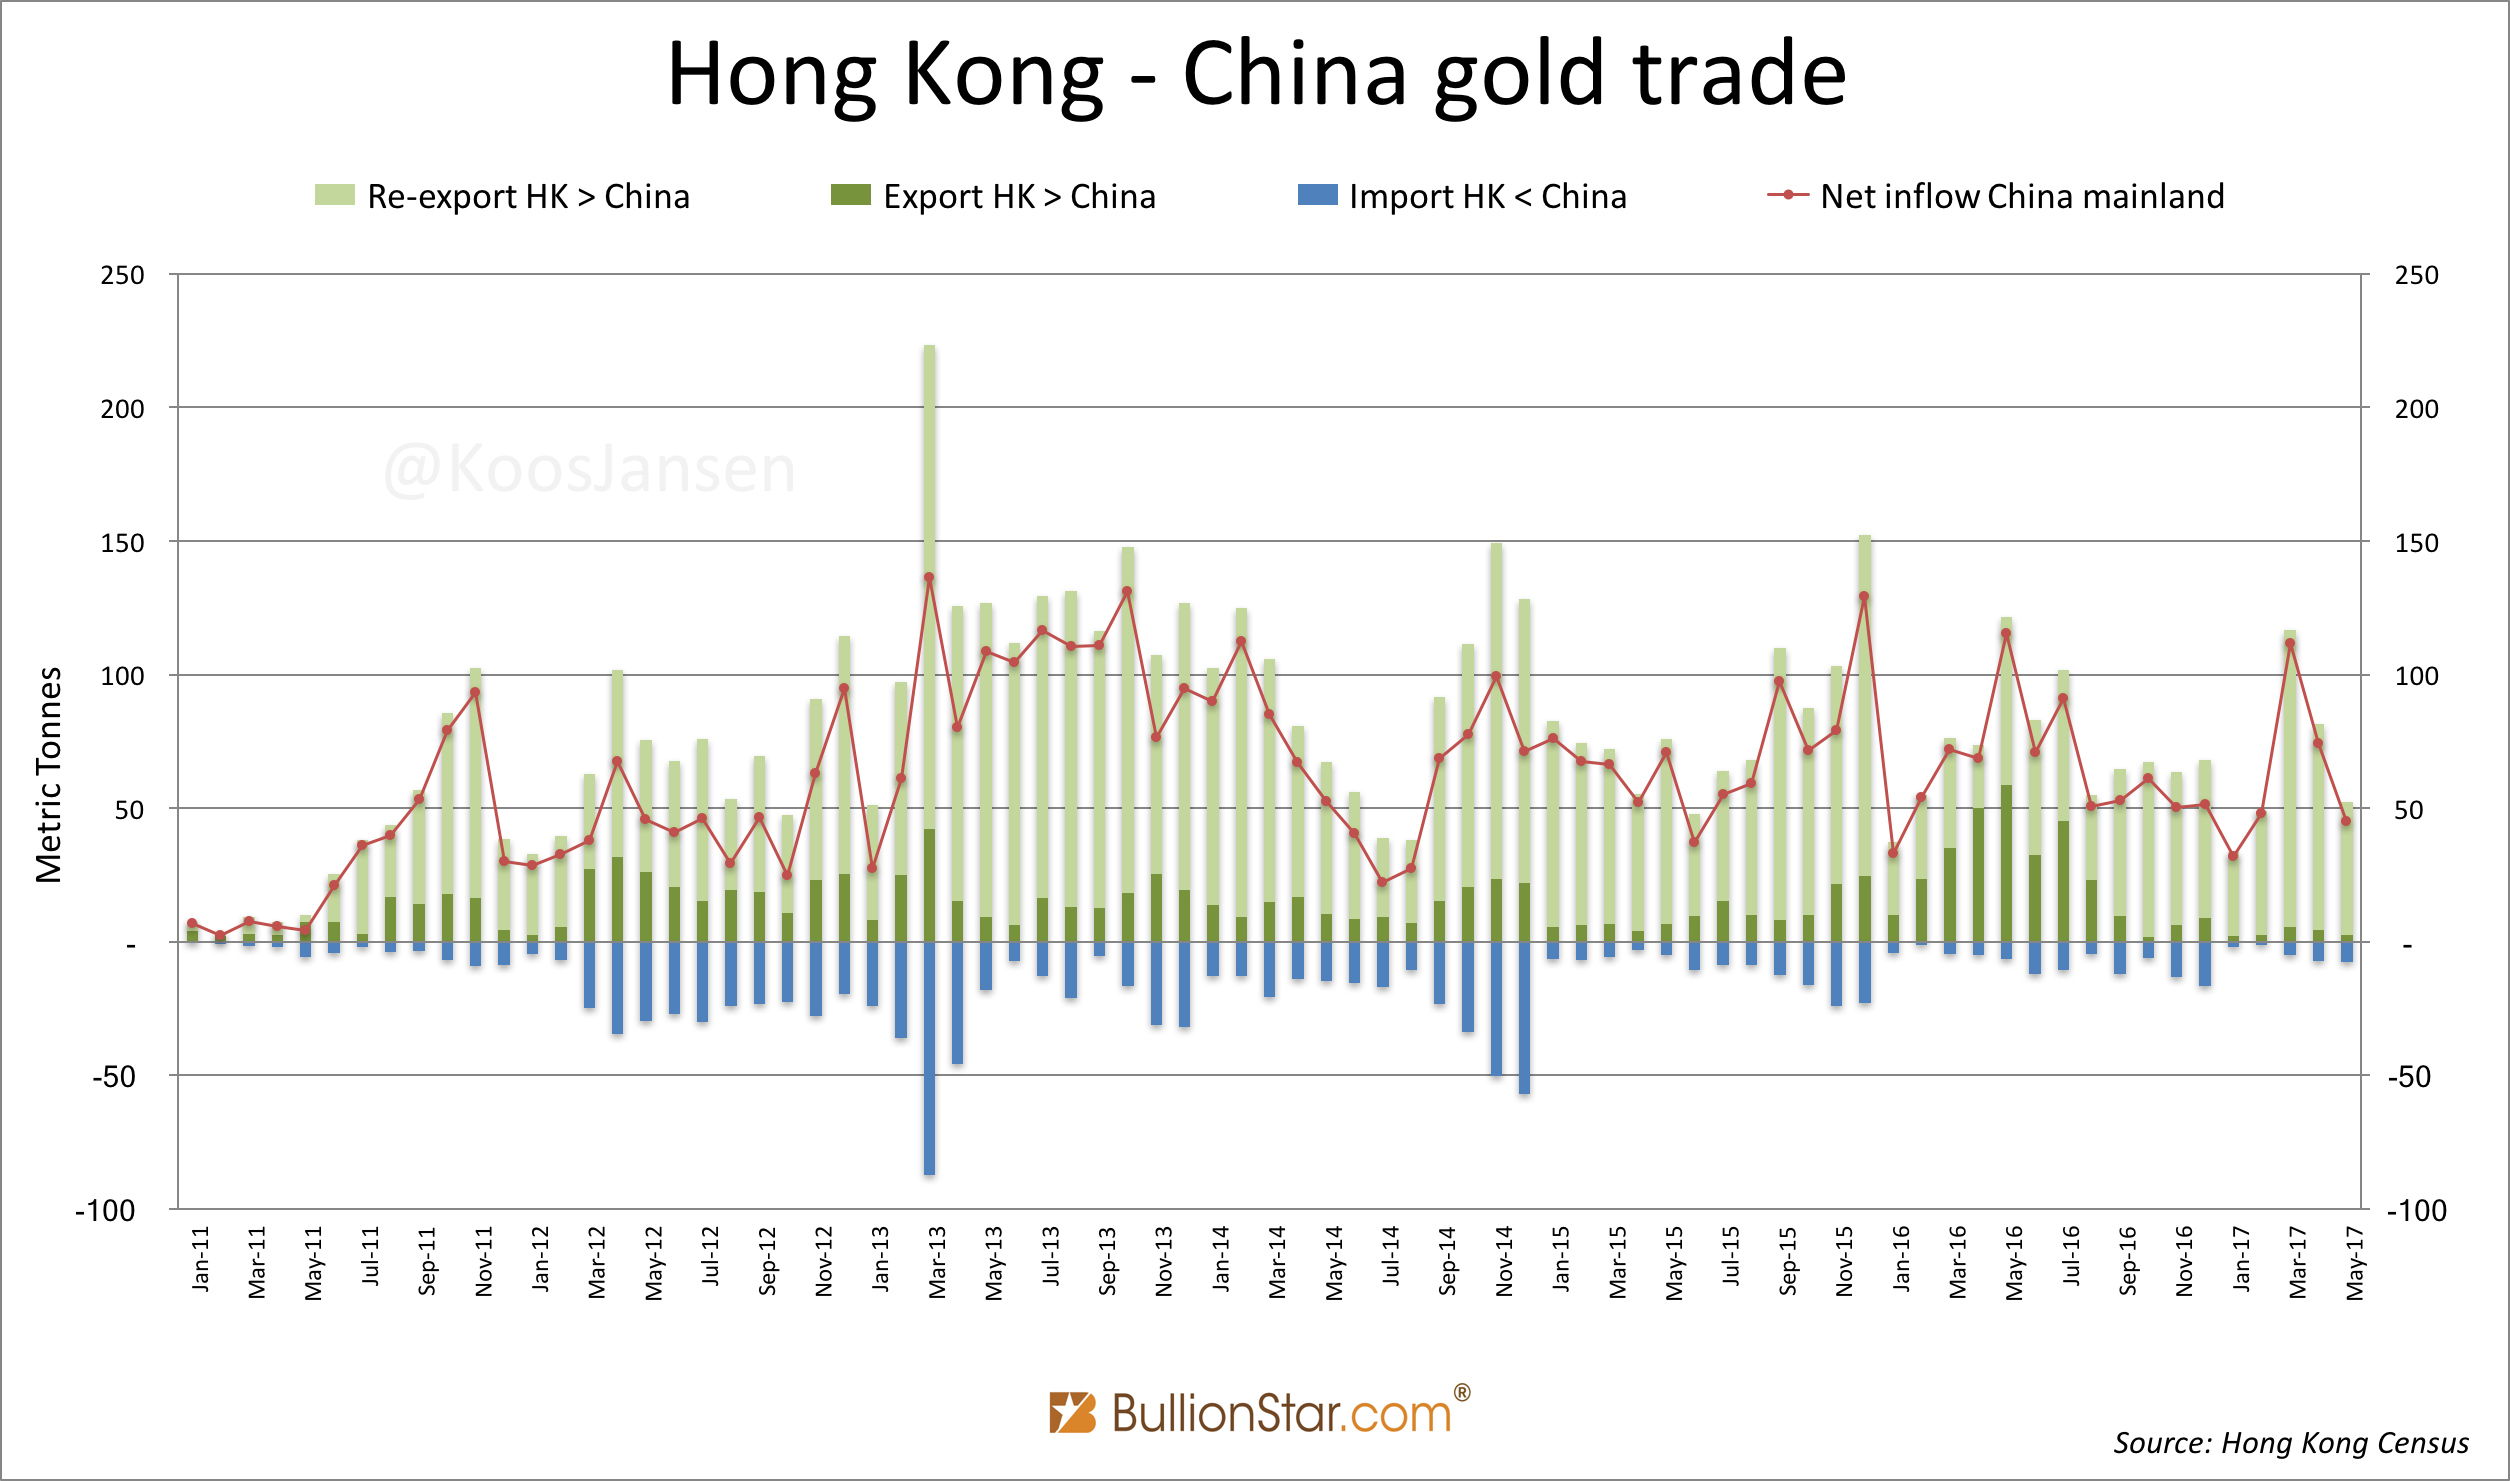 Hong Kong - China Gold Trade, Monthly Jan 2011 - May 2017